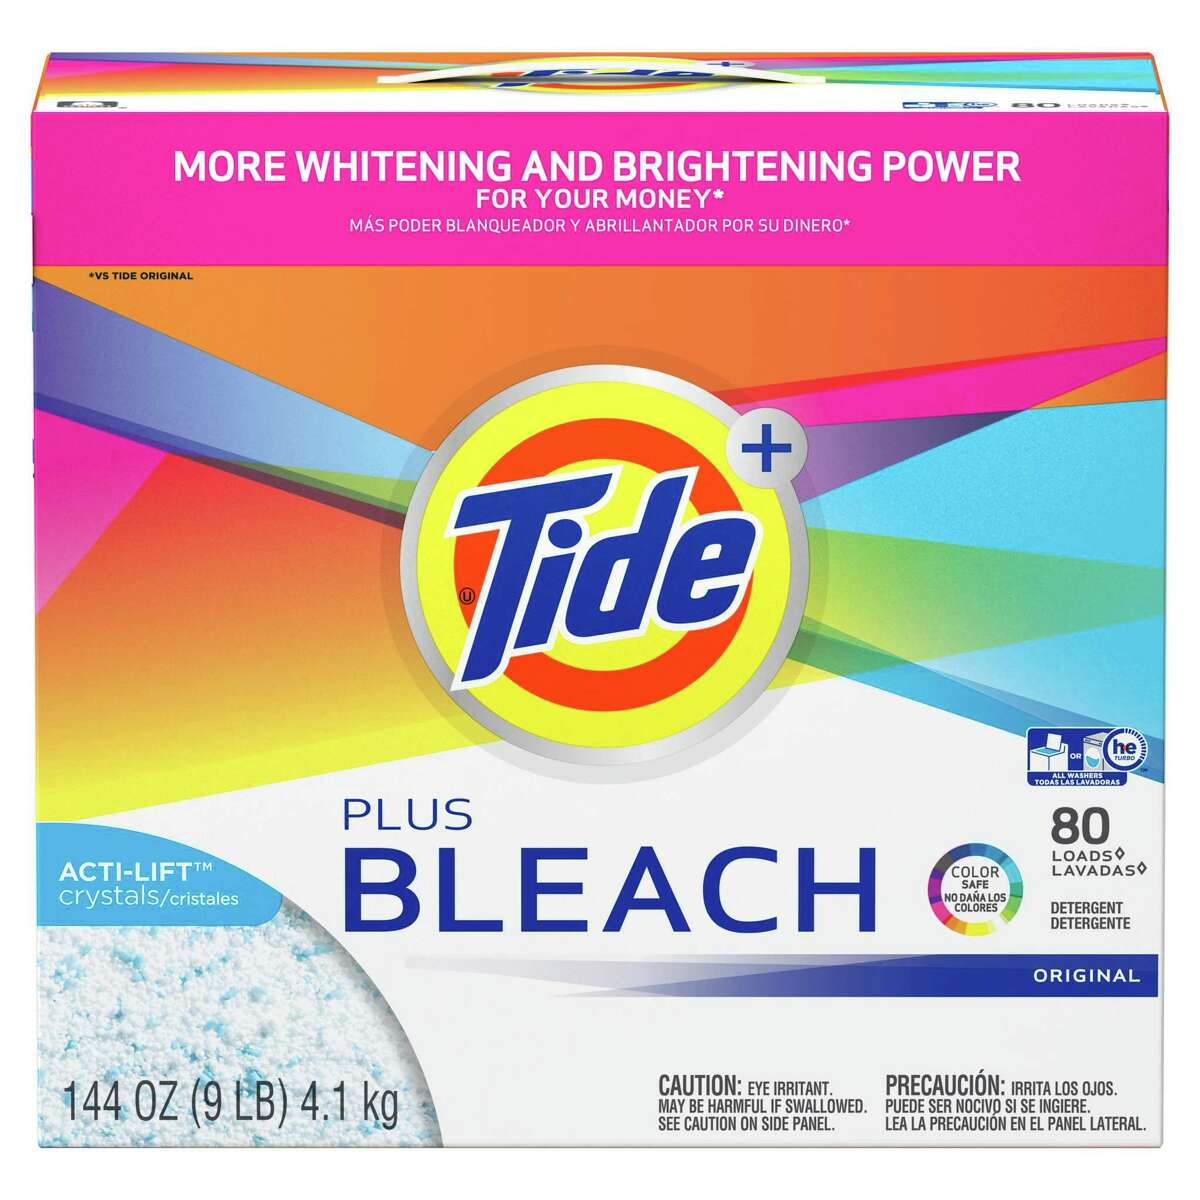 1) Tide Plus Bleach Powder Detergent: $18.96 Shop Now There's no beating Tide Plus Bleach Powder, which works just as well in cold water as hot. It also gives clothes a splash of color-safe bleach to make your whites and colors brighter with every cycle. It does not contain chlorine bleach so that's what makes it safe for all washable fabrics and colors.